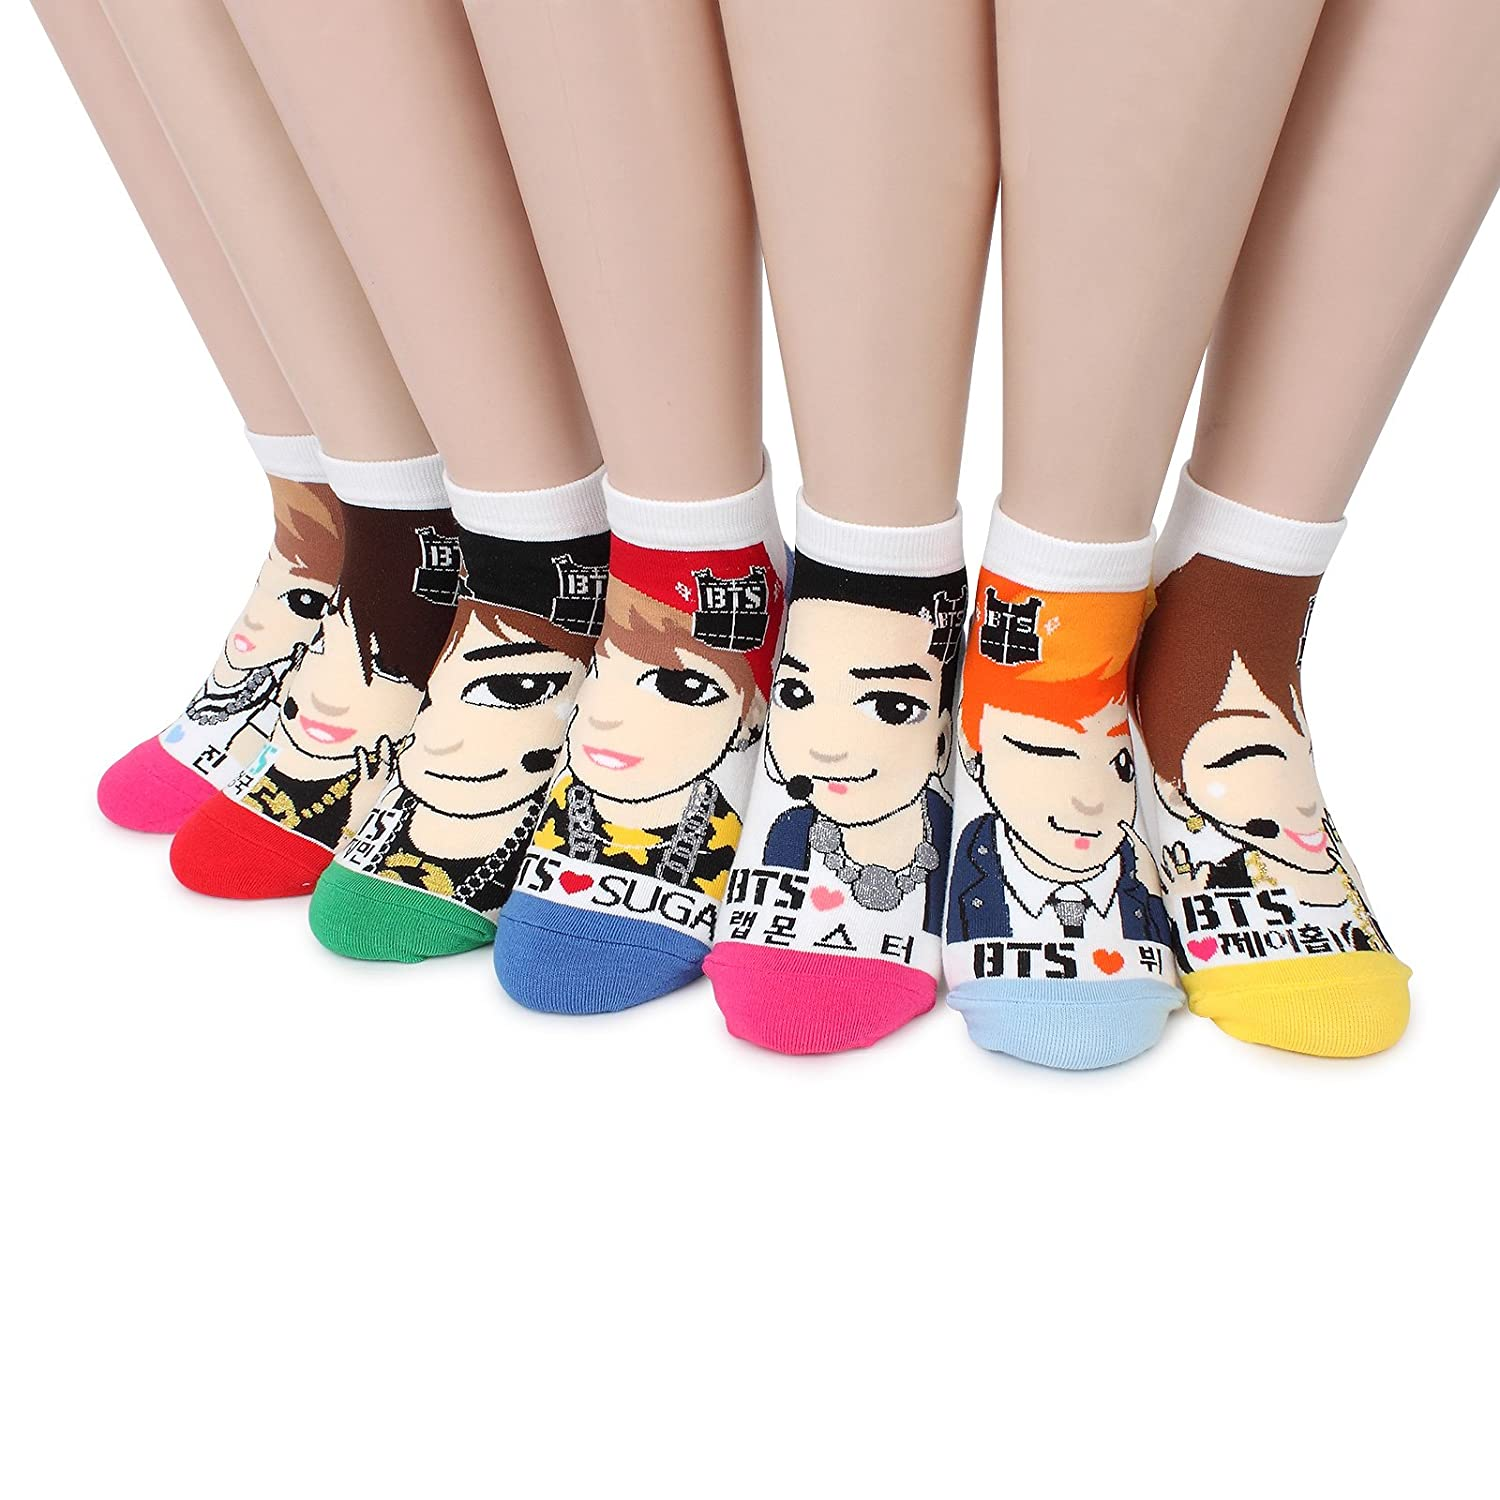 BTS K-pop Star Socks(Pack of 7pairs) NB, One Size Fits All: Women's 6-8.5